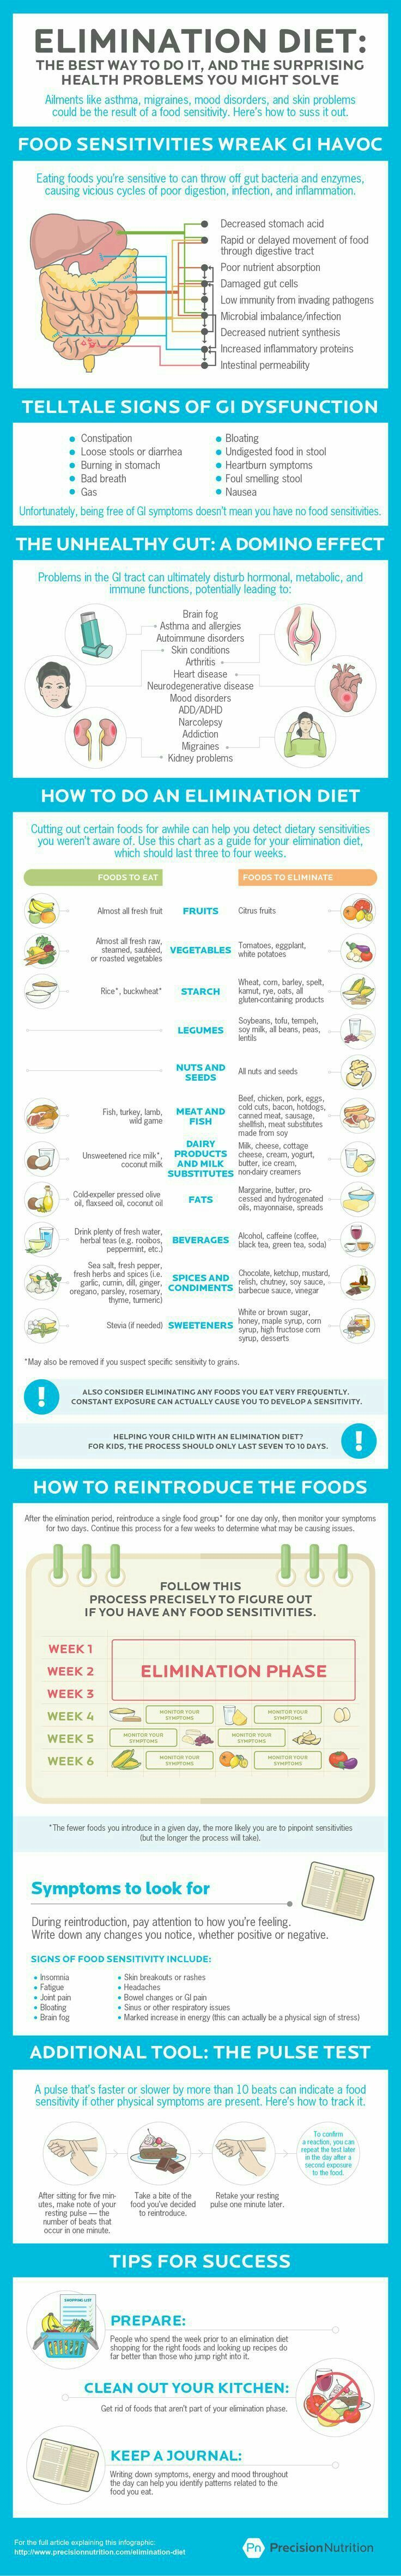 Elimination diet infographic